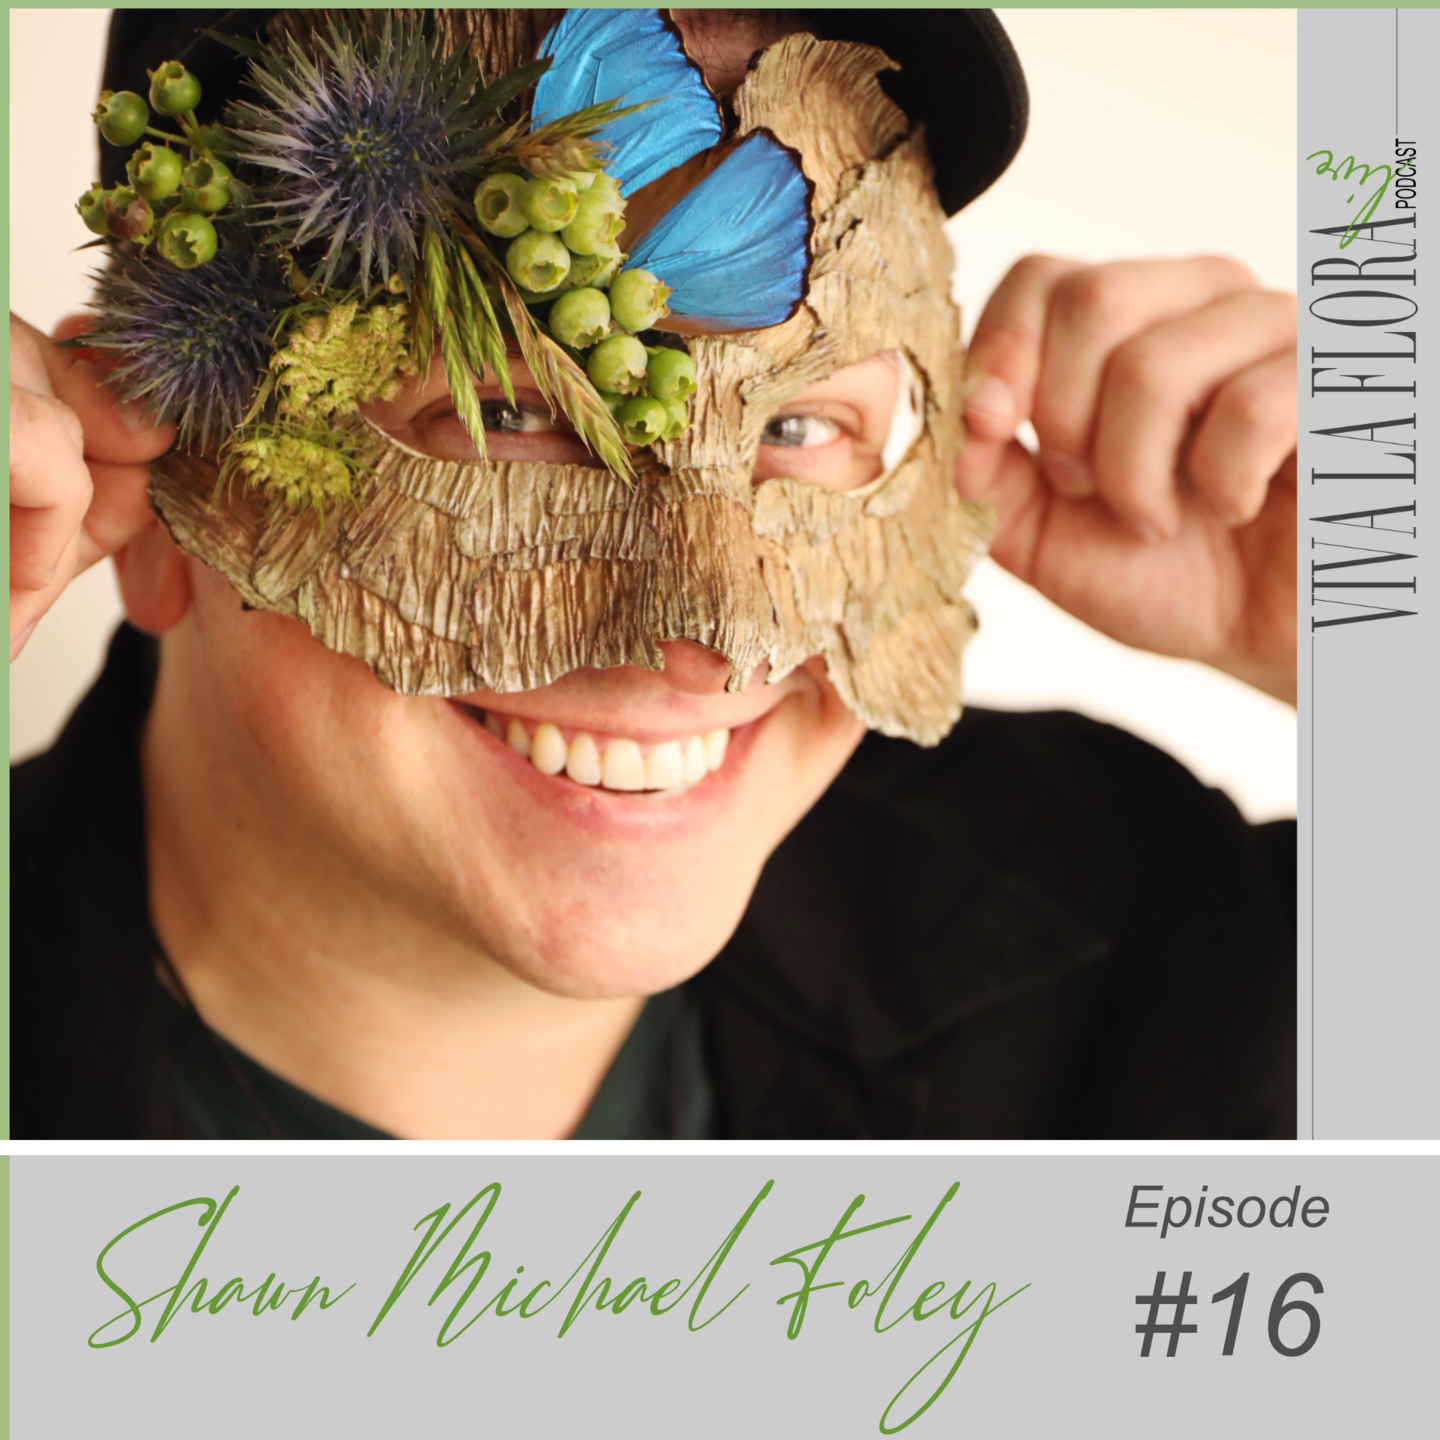 Shaw Michael Foley smiling with a floral mask for Viva La Flora Live podcast episode 16 cover